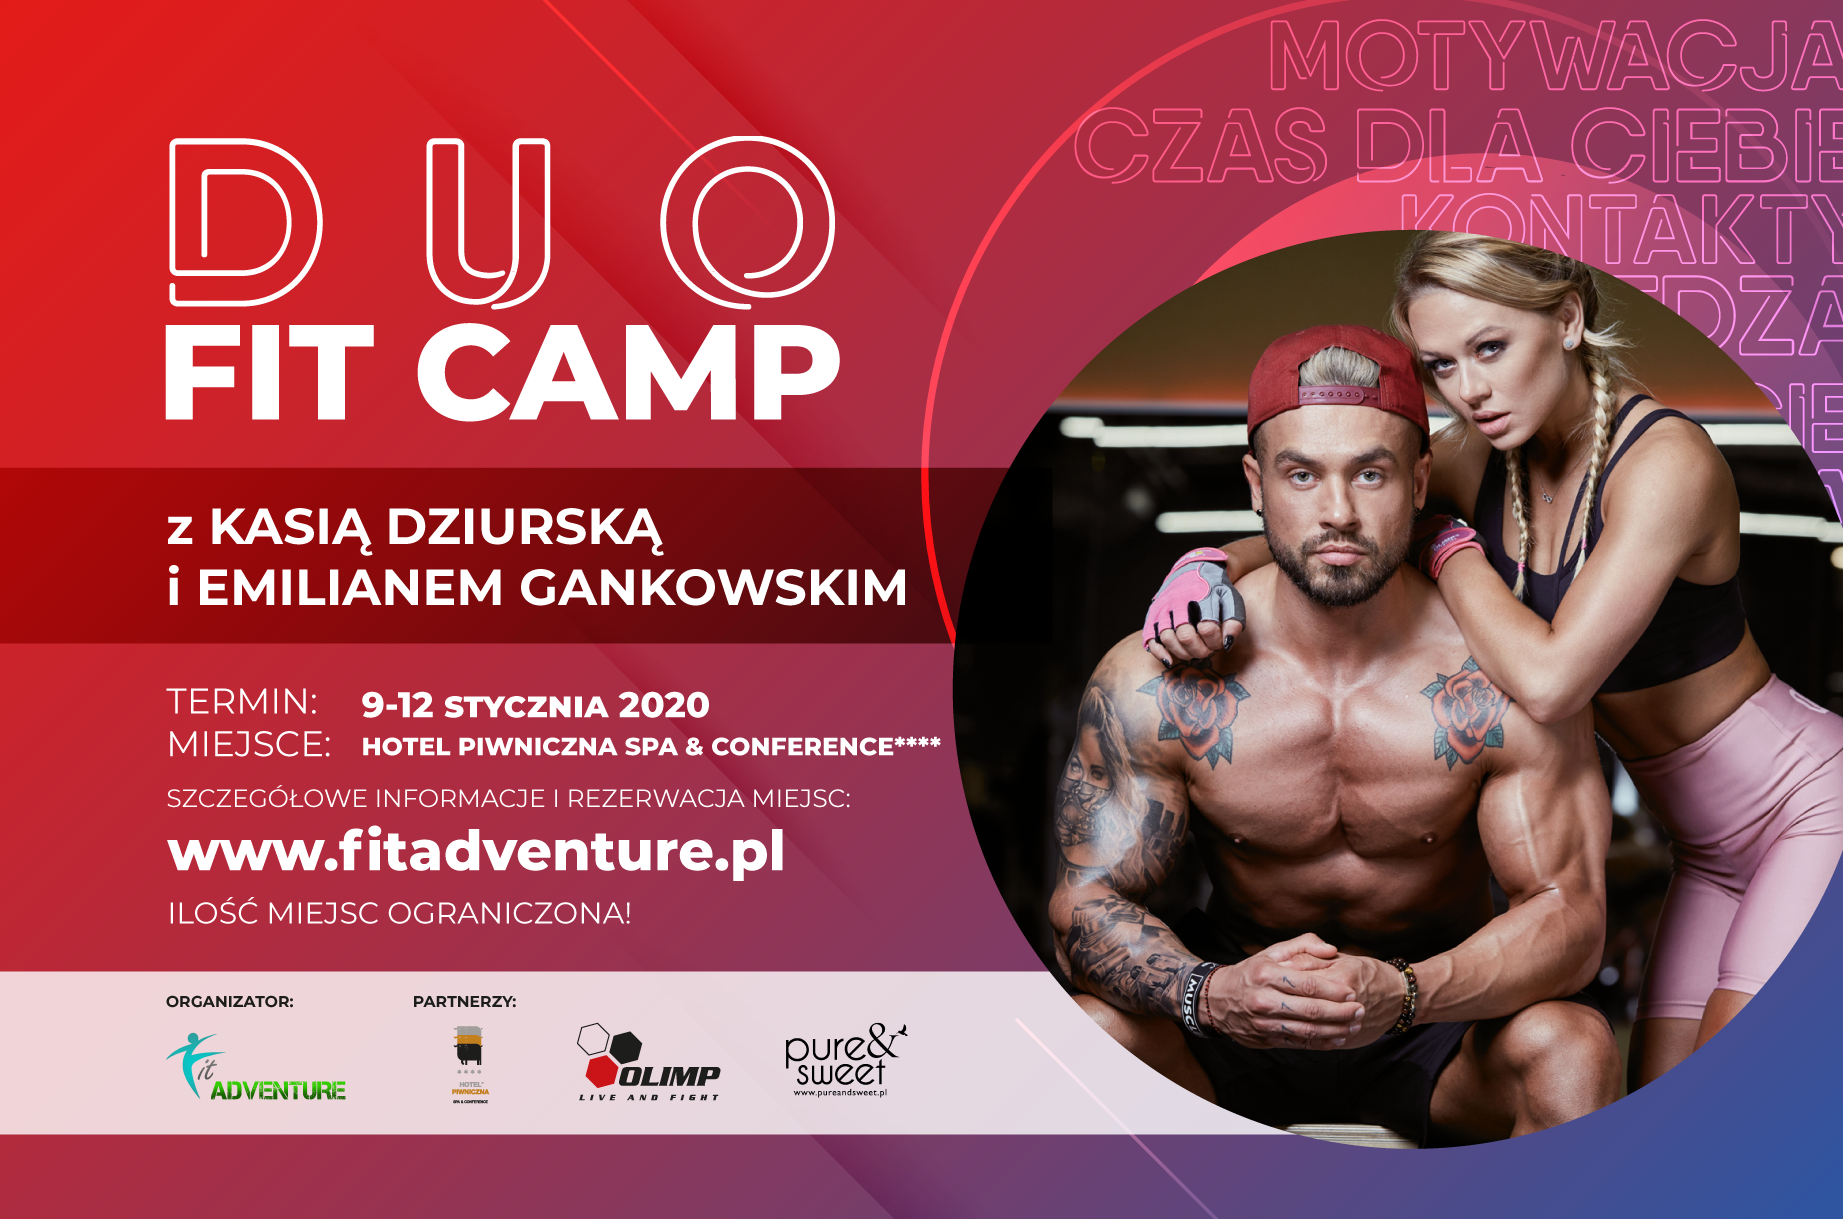 duo fit camp www